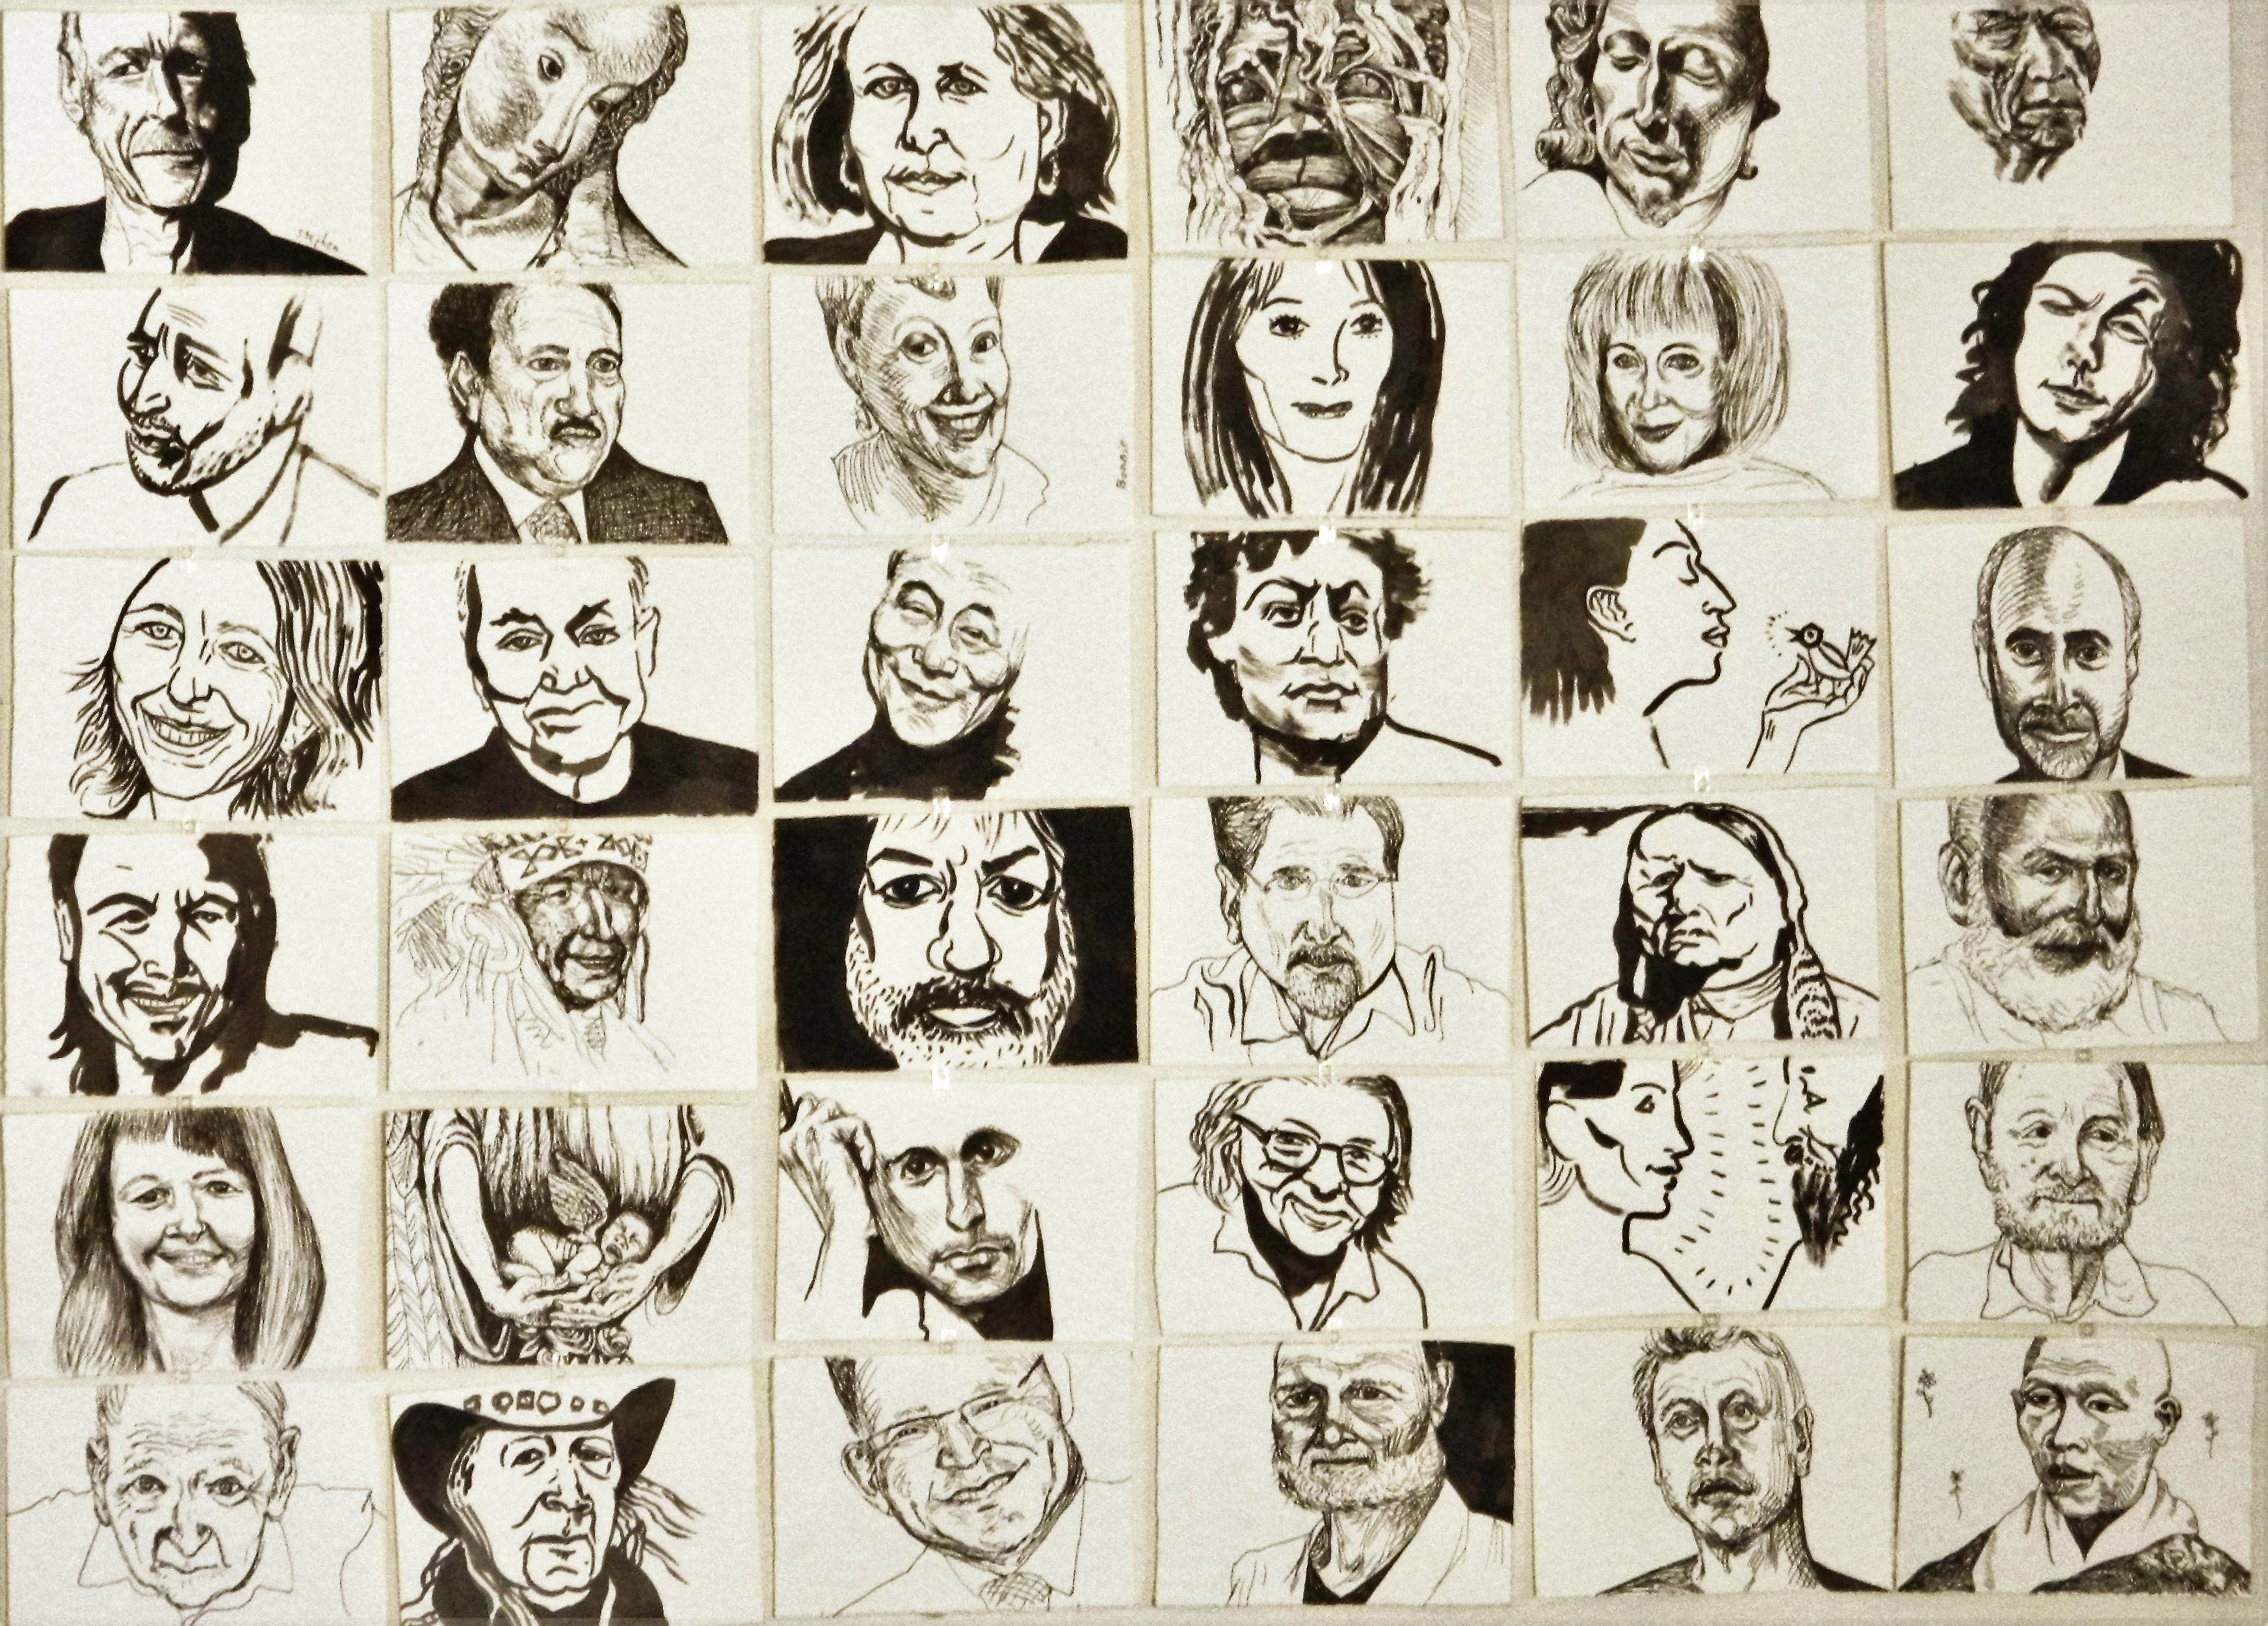 """Part of 20 foot by 7 foot """"portrait of collective consciousness"""""""